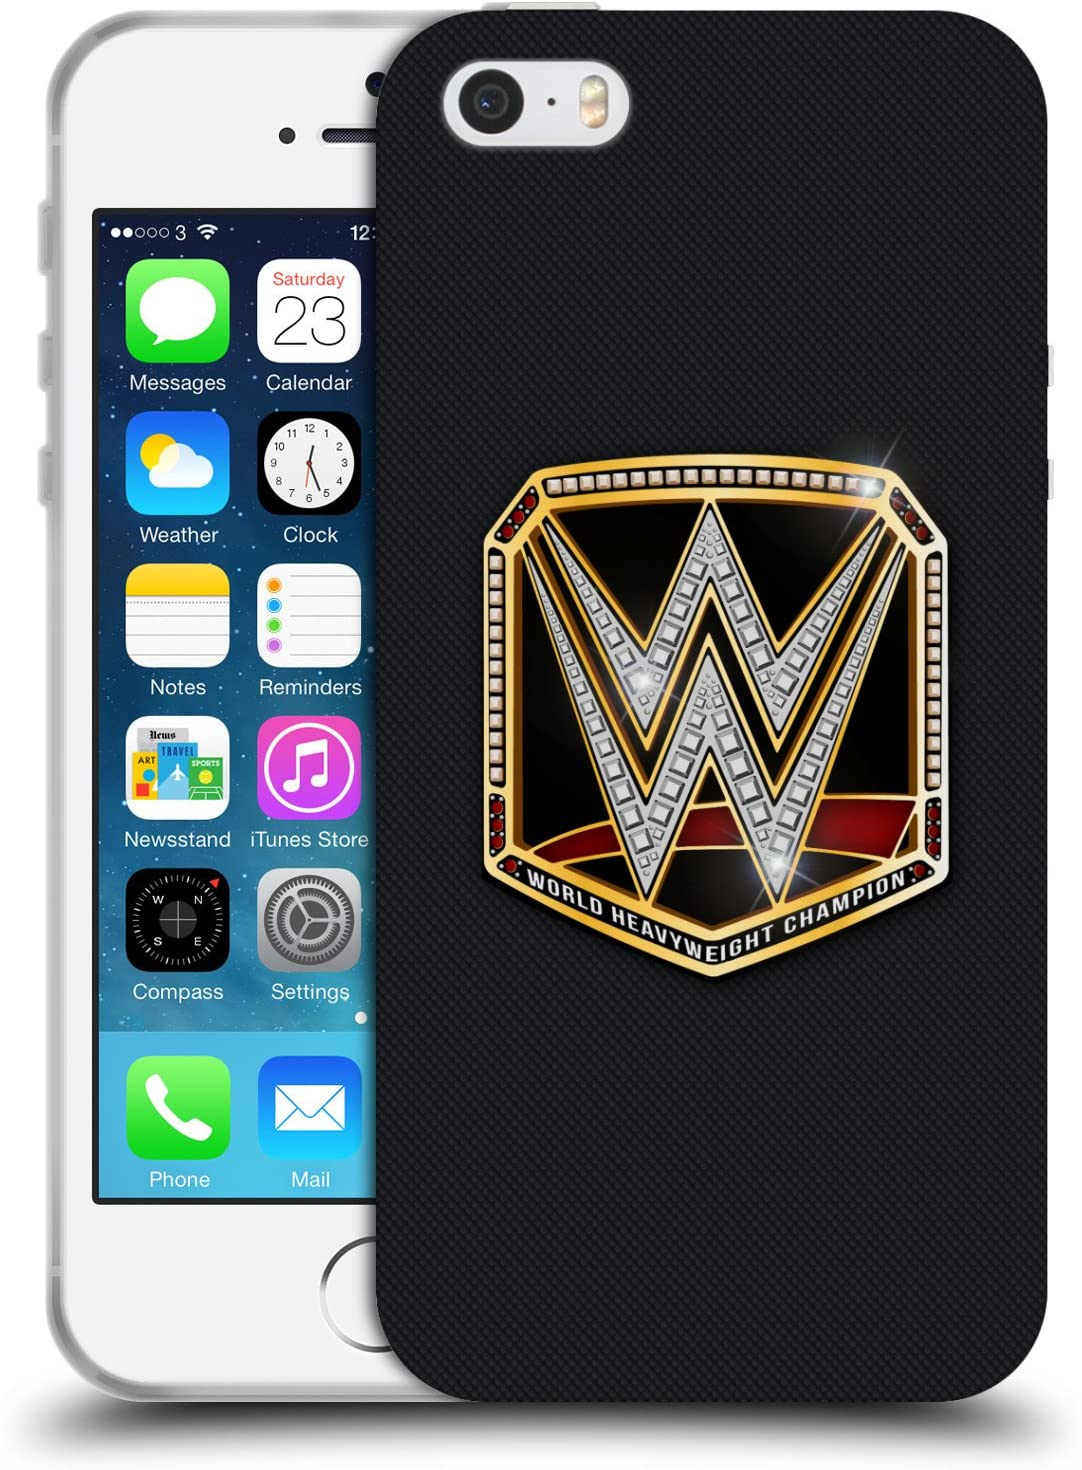 B01N3AHG0L Head Case Designs Officially Licensed by WWE World Heavyweight Champion Title Belts Soft Gel Case Compatible with Apple iPhone 5 iPhone 5s iPhone SE 81K9gzD6vwL